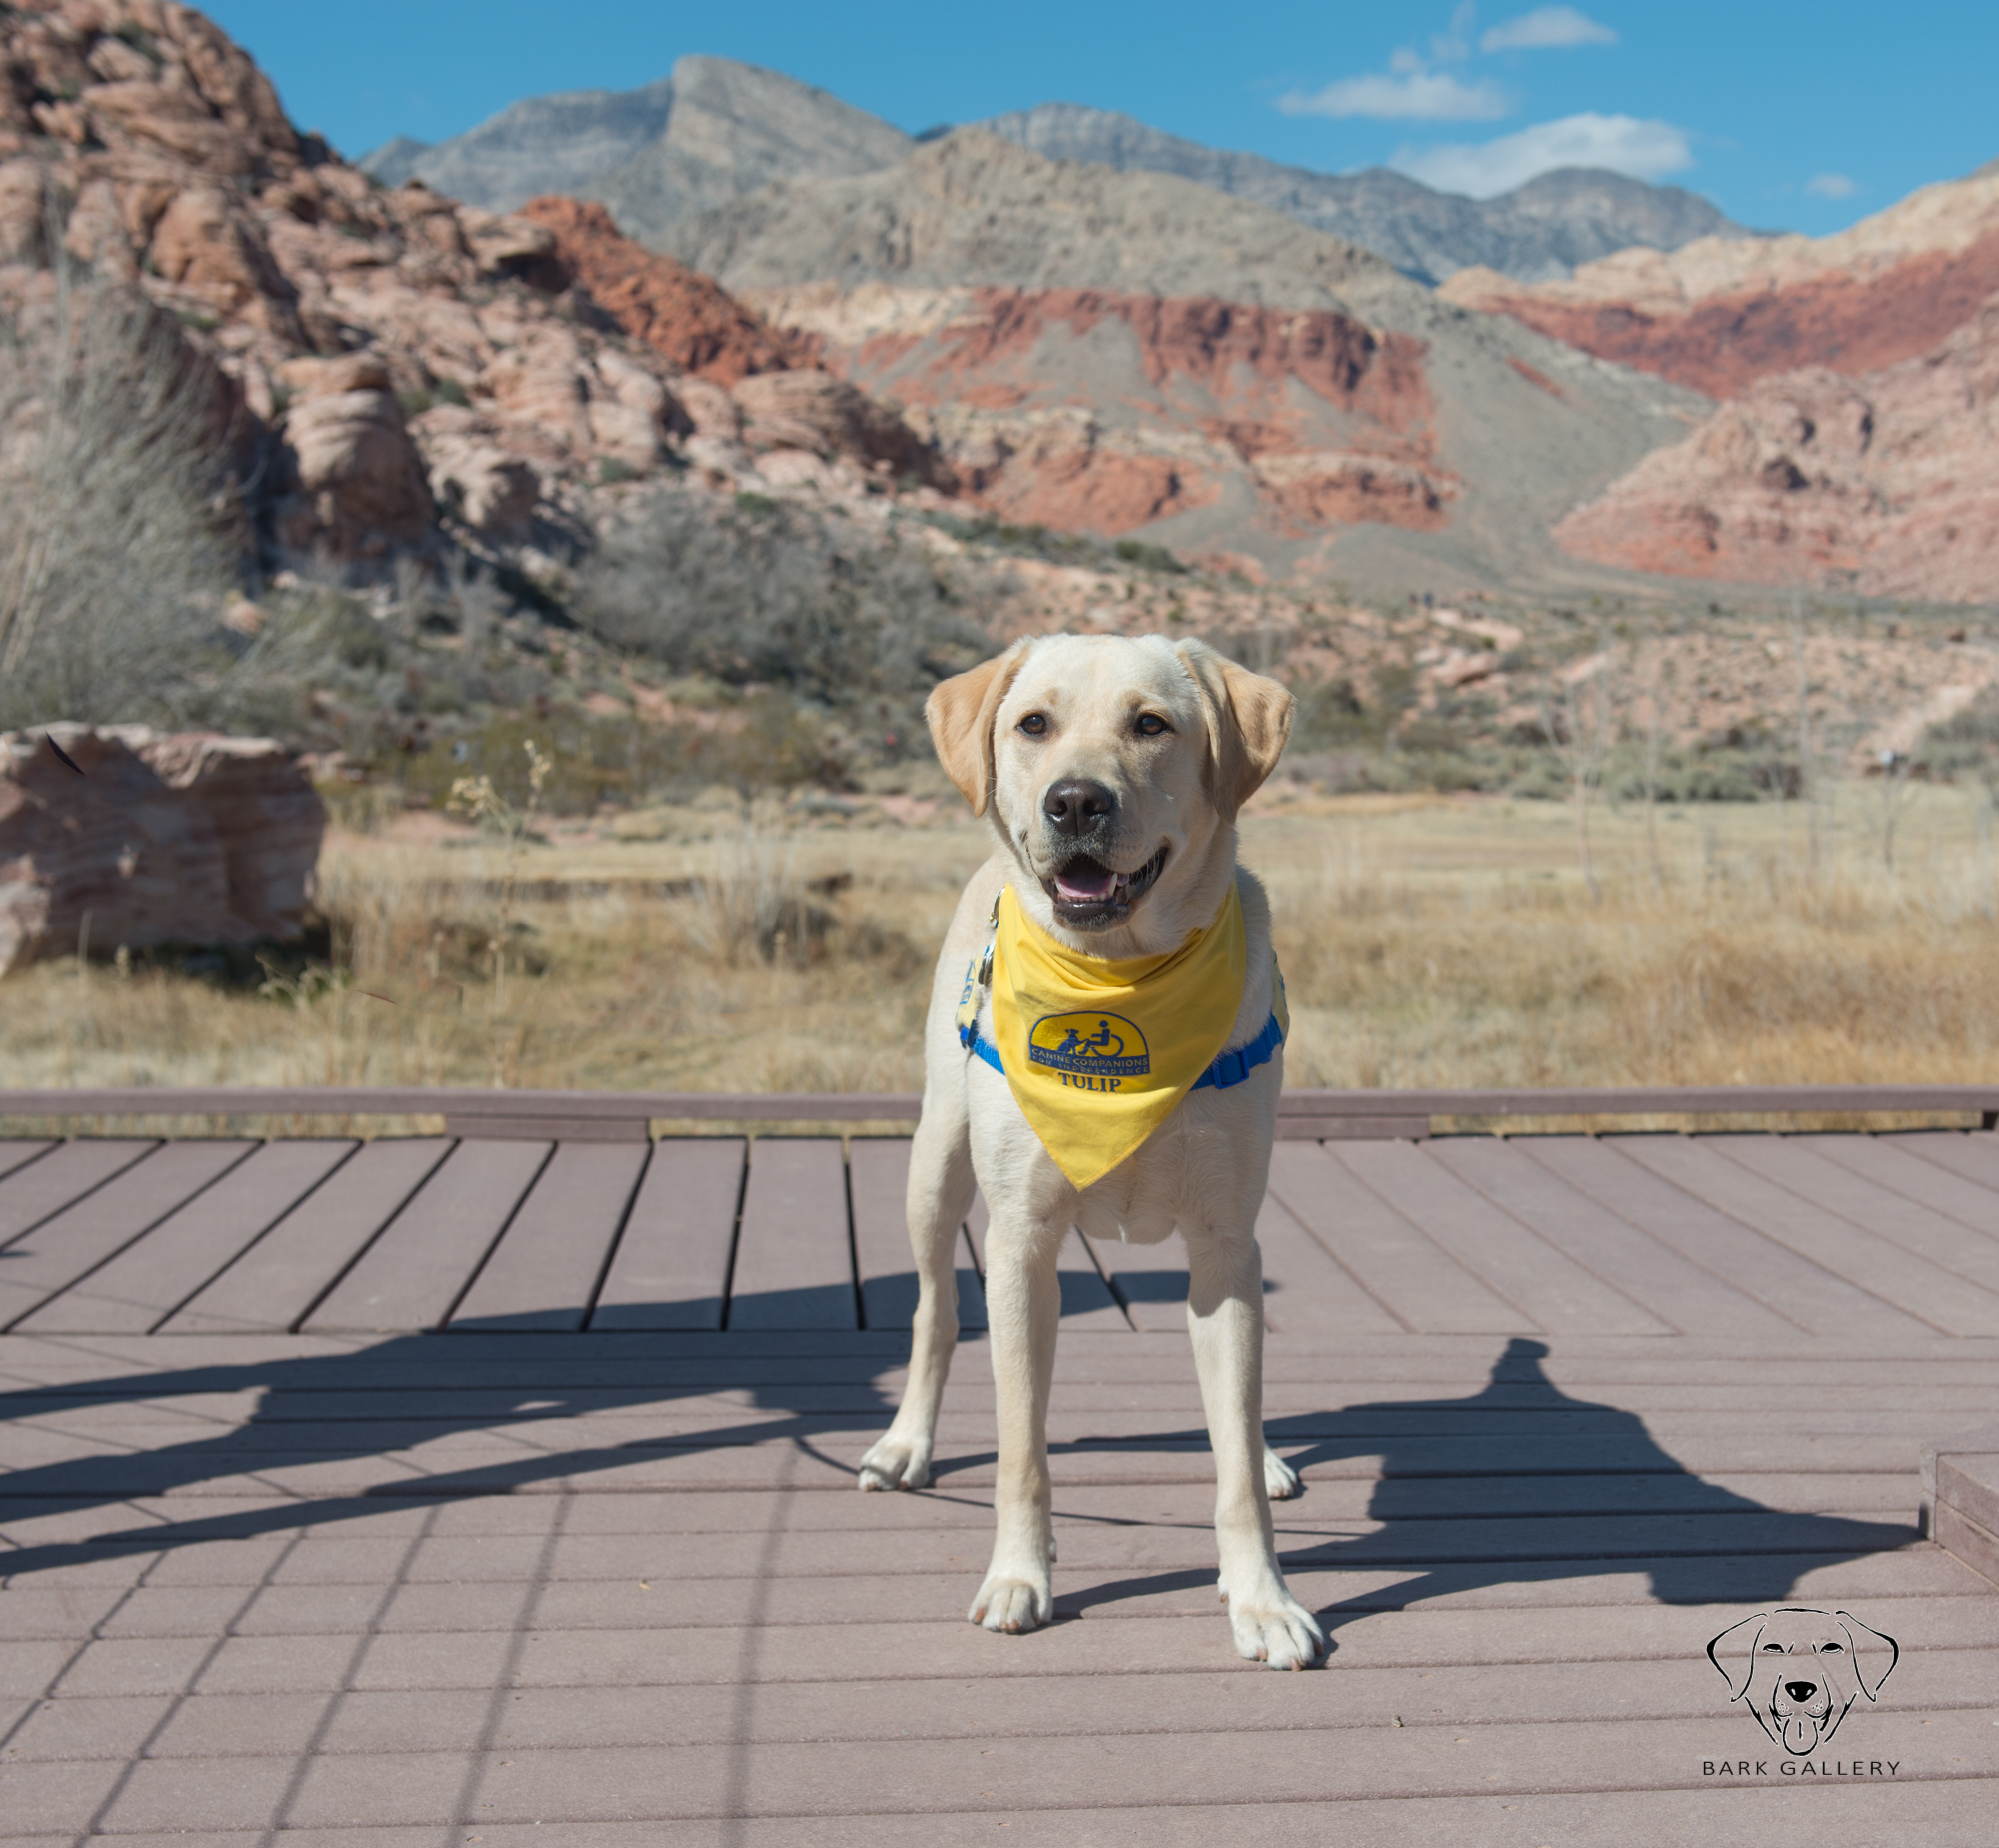 Tulip enjoying a nice stroll along Red Rock. (Leash removed in post.)